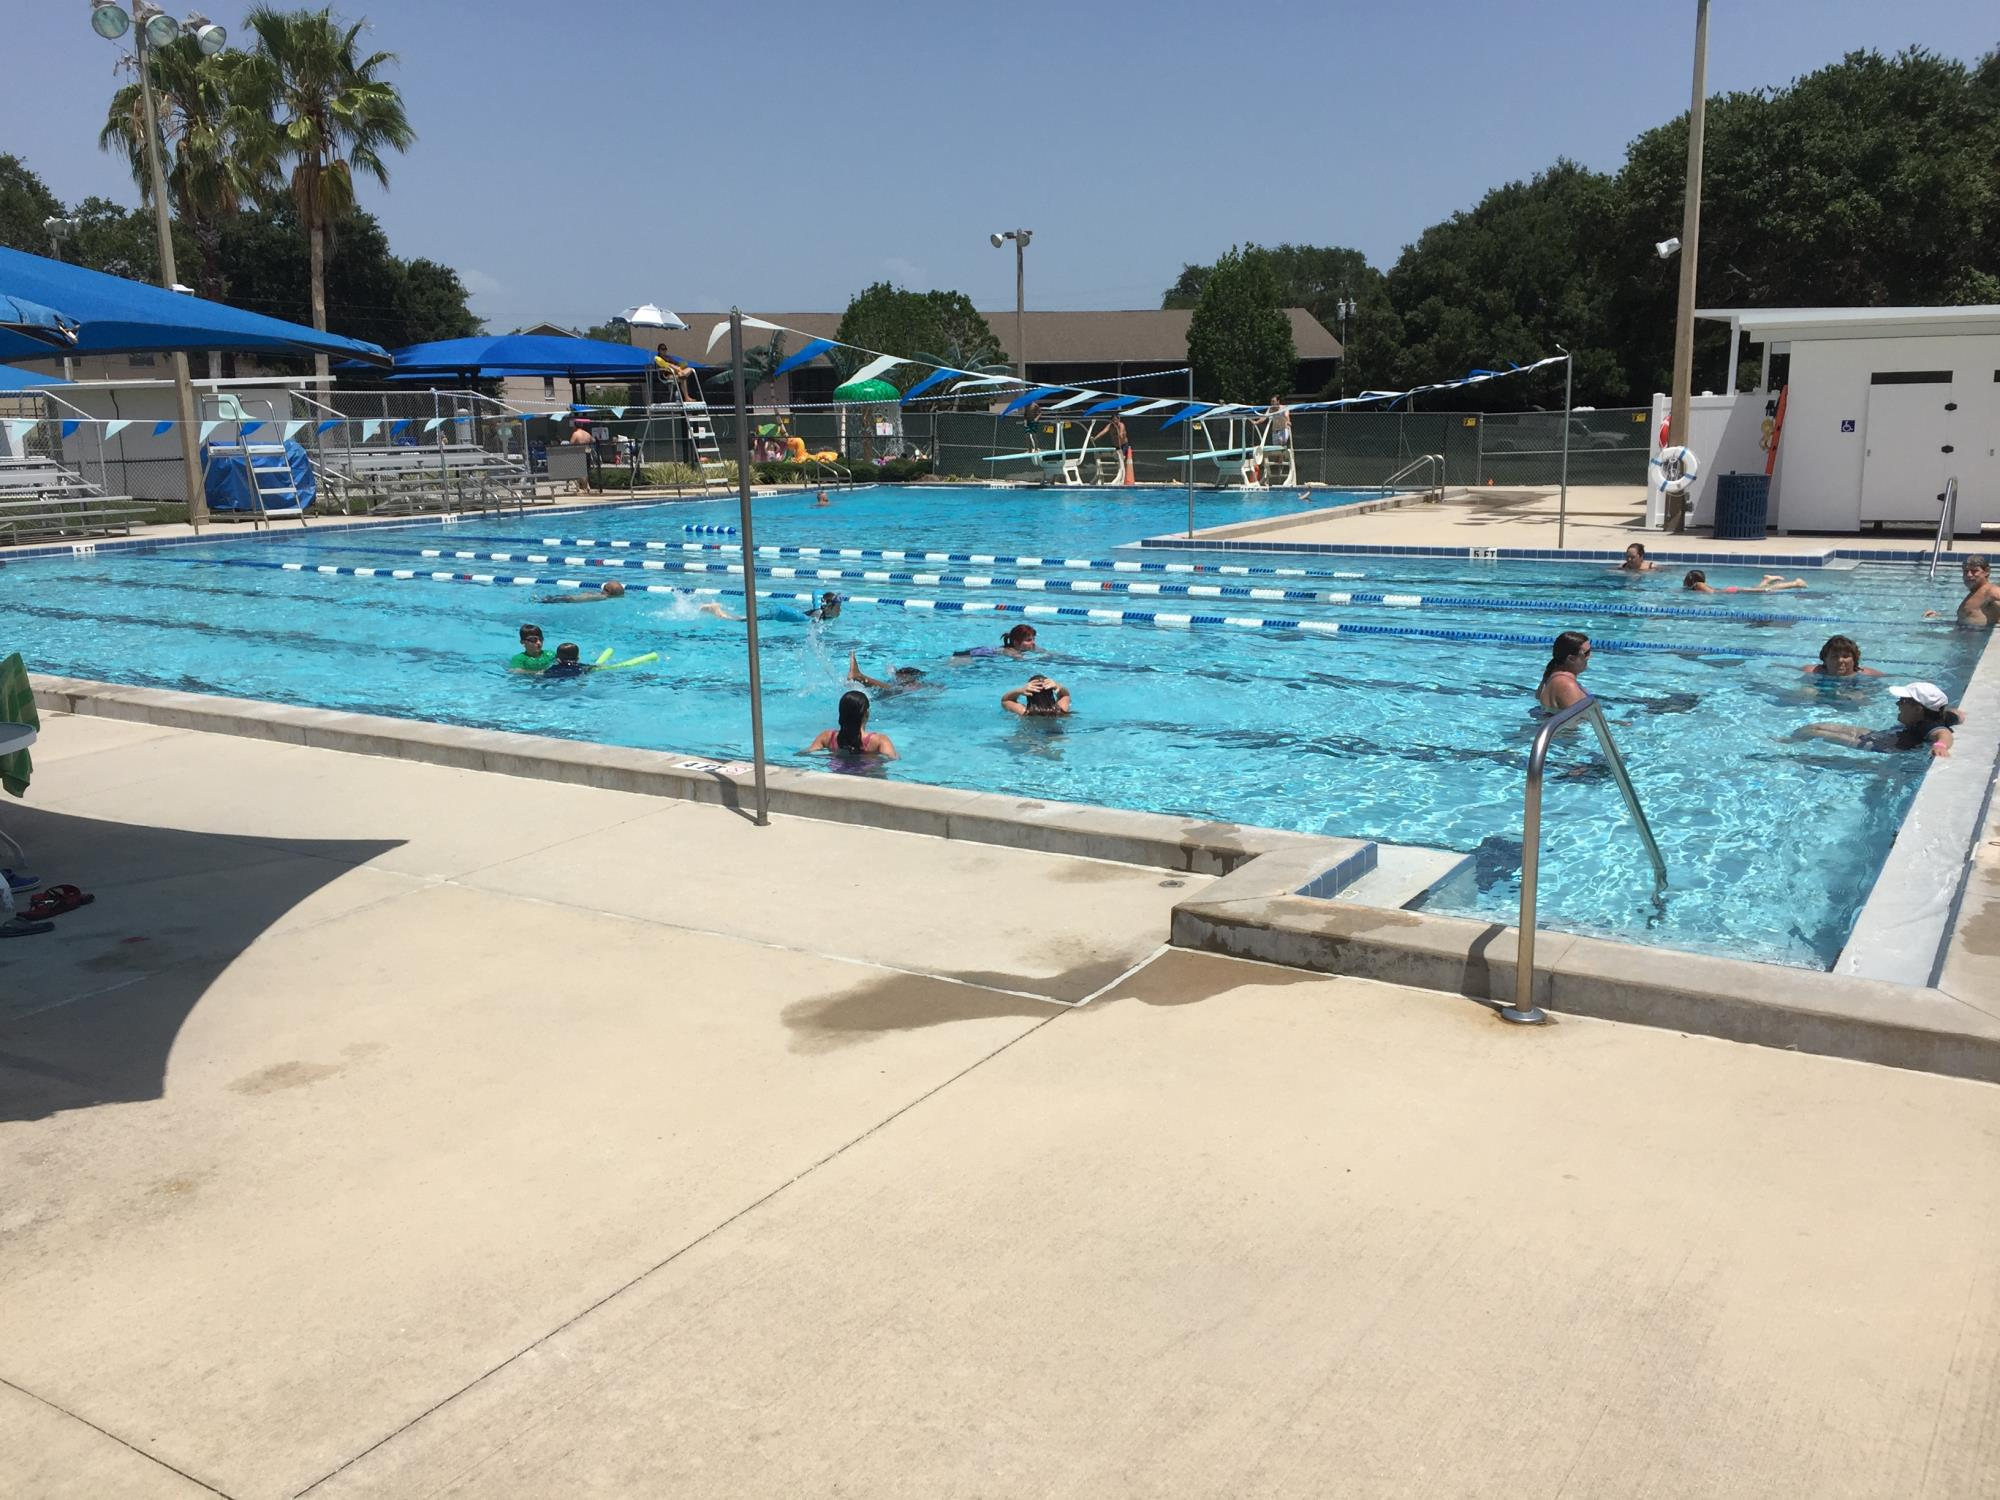 Morningside Pool | Clearwater, FL Parks and Recreation